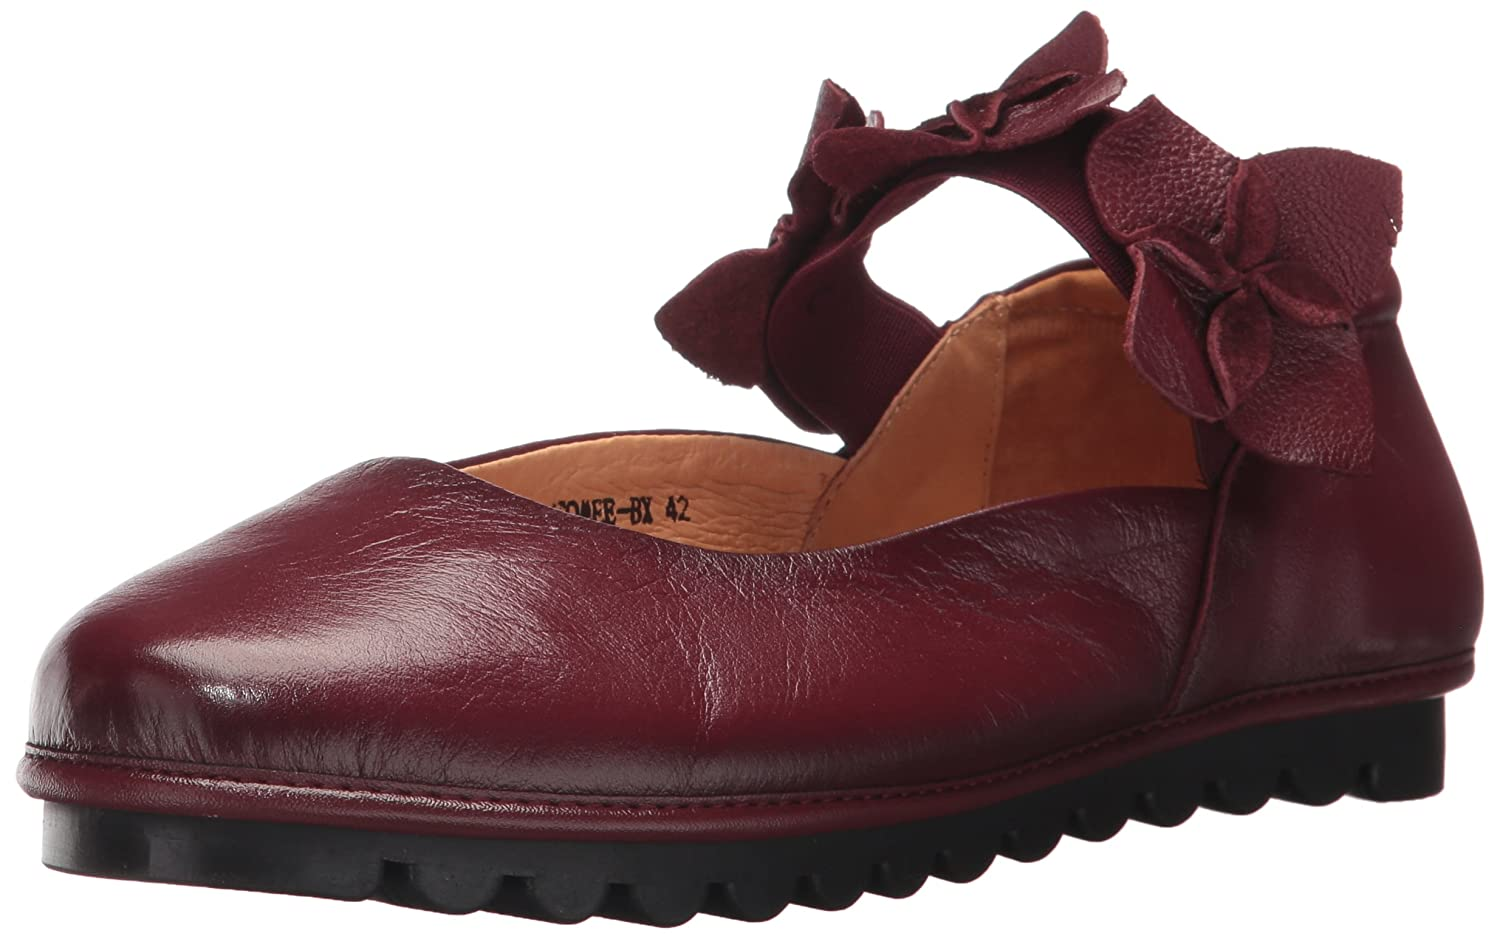 L'Artiste by Spring Step Women's Tomee Mary Jane Flat B06XK5TFRH 36 EU/5.5 -6 M US|Bordeaux